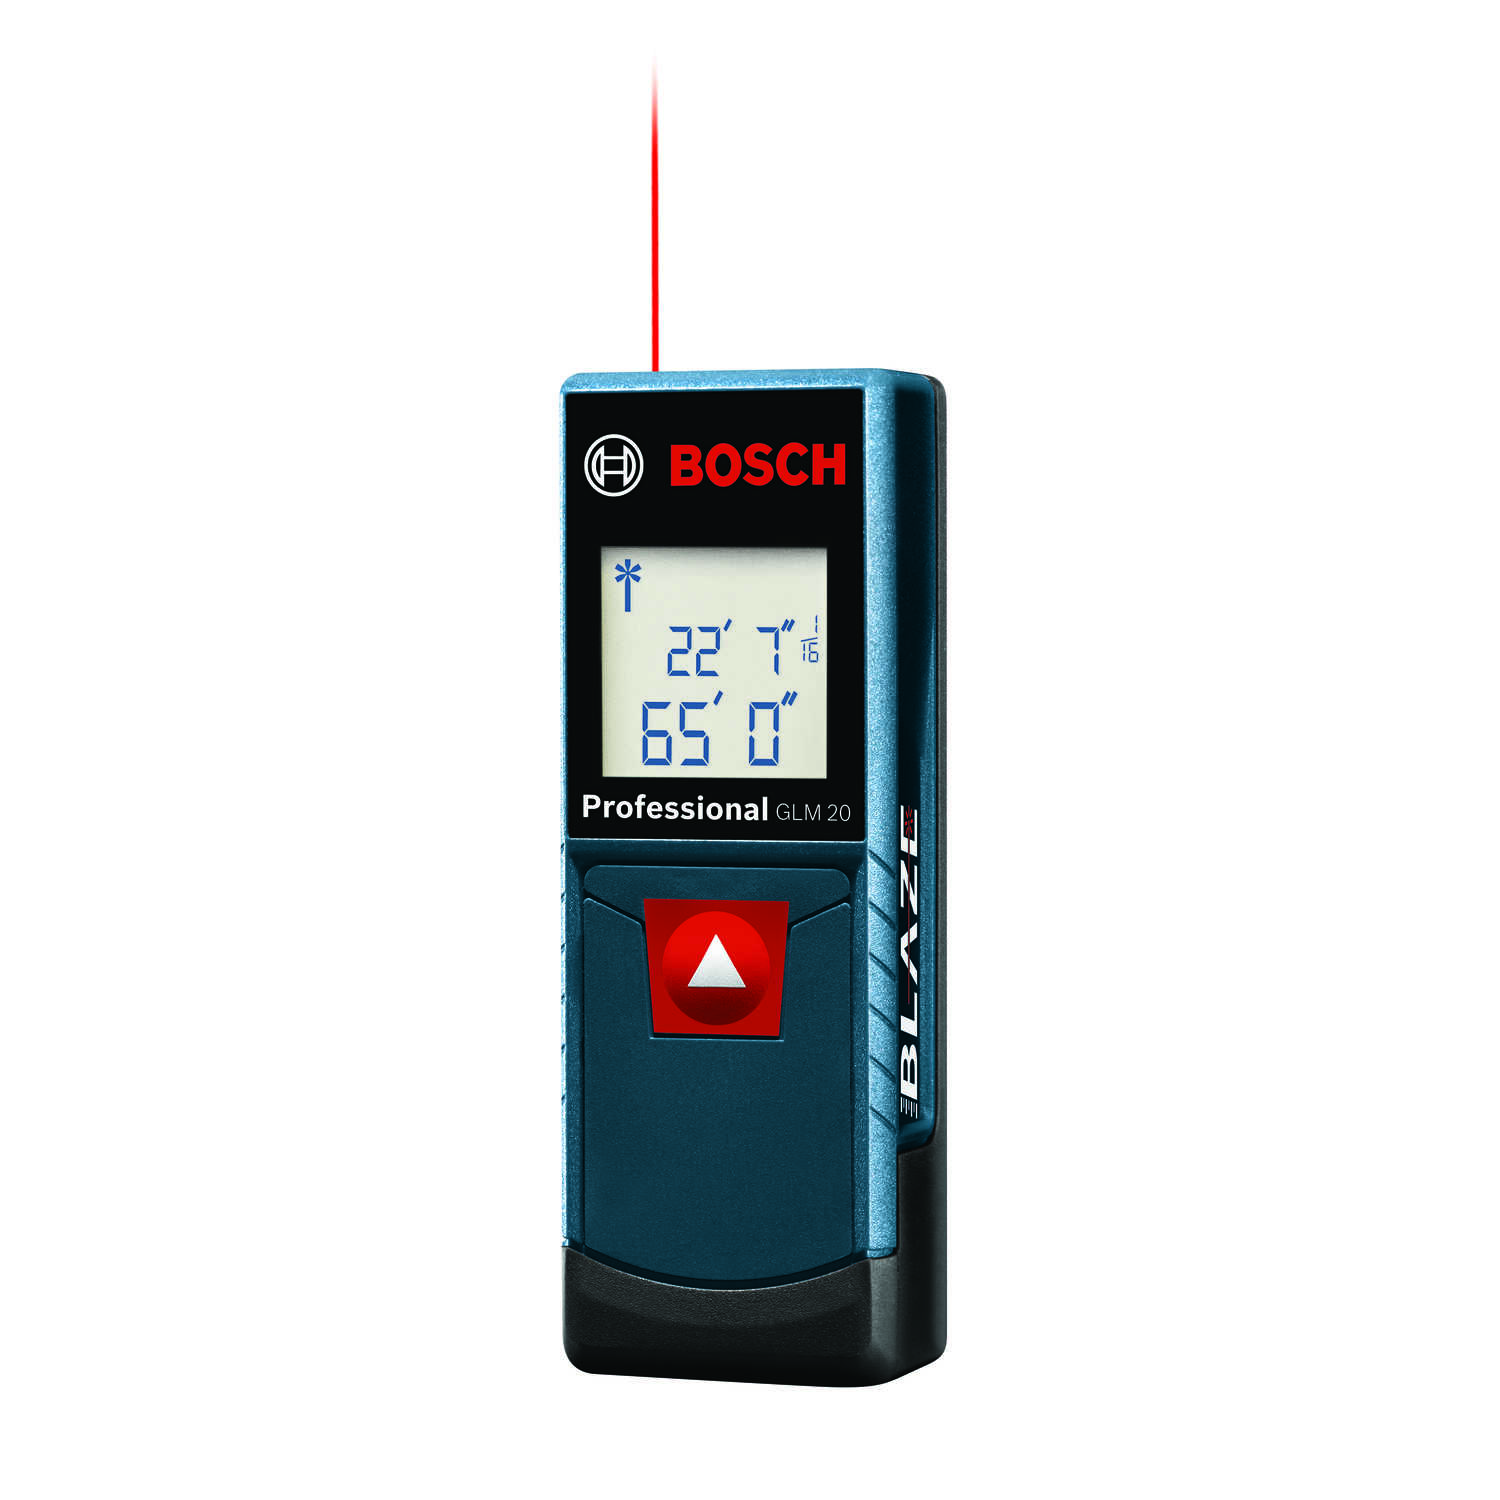 Bosch  BLAZE  4 in. L x 1.4 in. W With backlit display  Laser Distance Measurer  65 ft. Blue  3 pc.